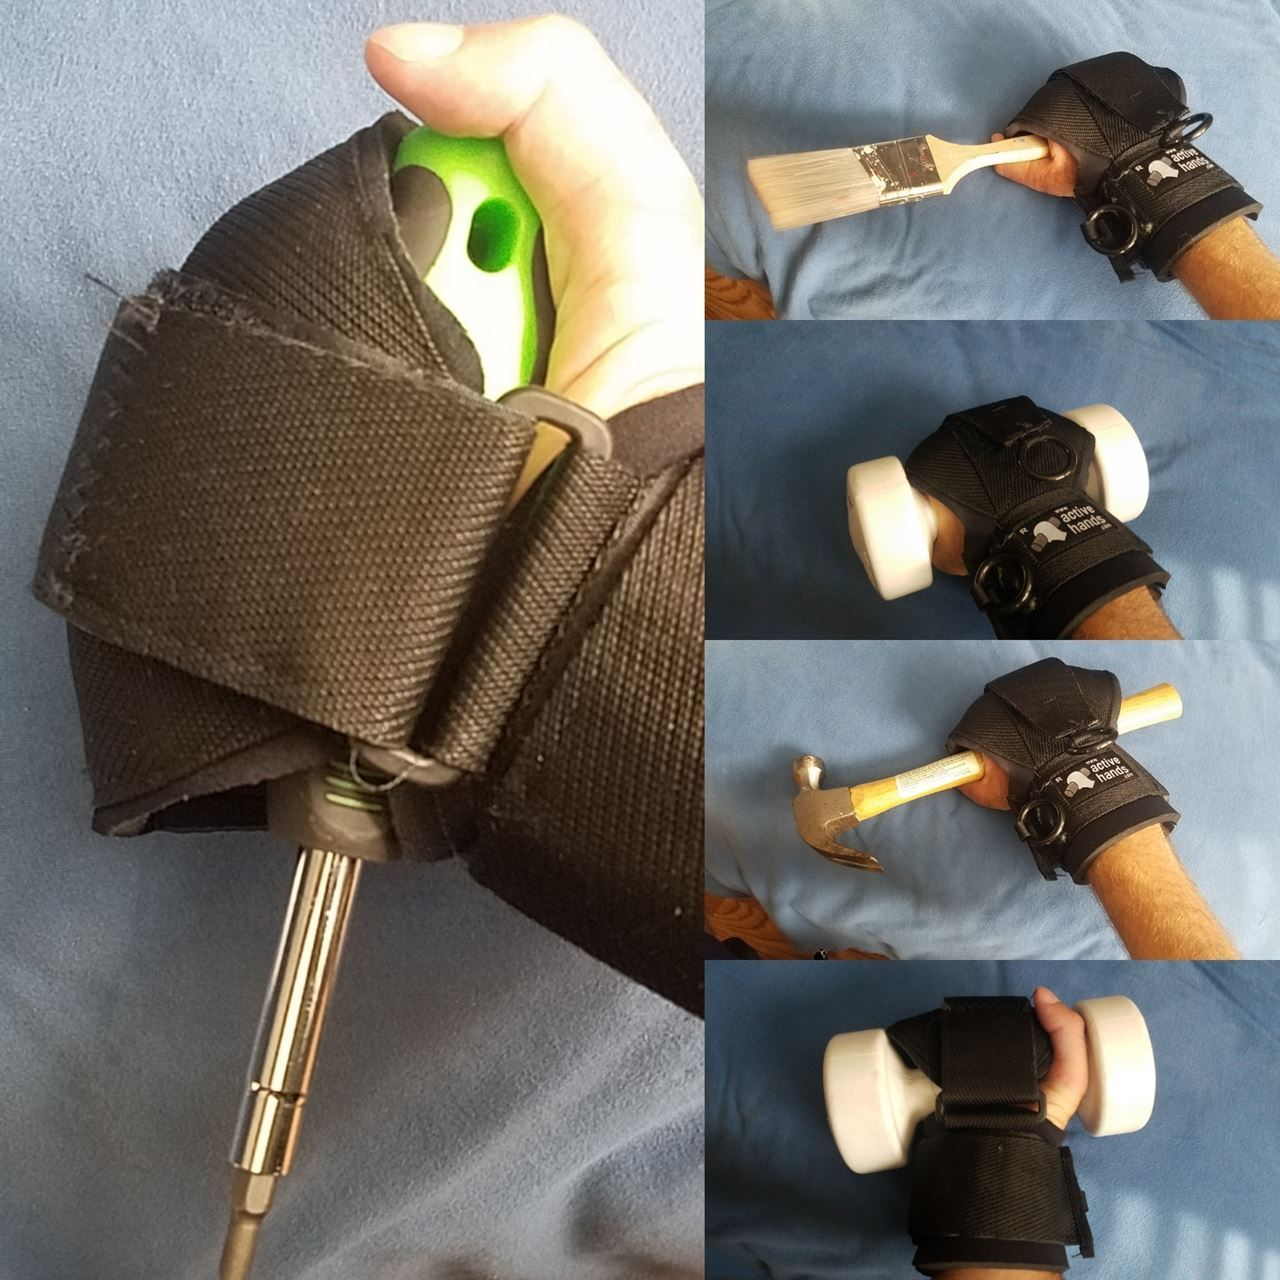 a hand is shown with a glove/wrap that is used to hold items in a person's palm that lacks hand function. image are shown with the person having their hand wrapped around a screwdriver, a weight, a paintbrush, and a hammer